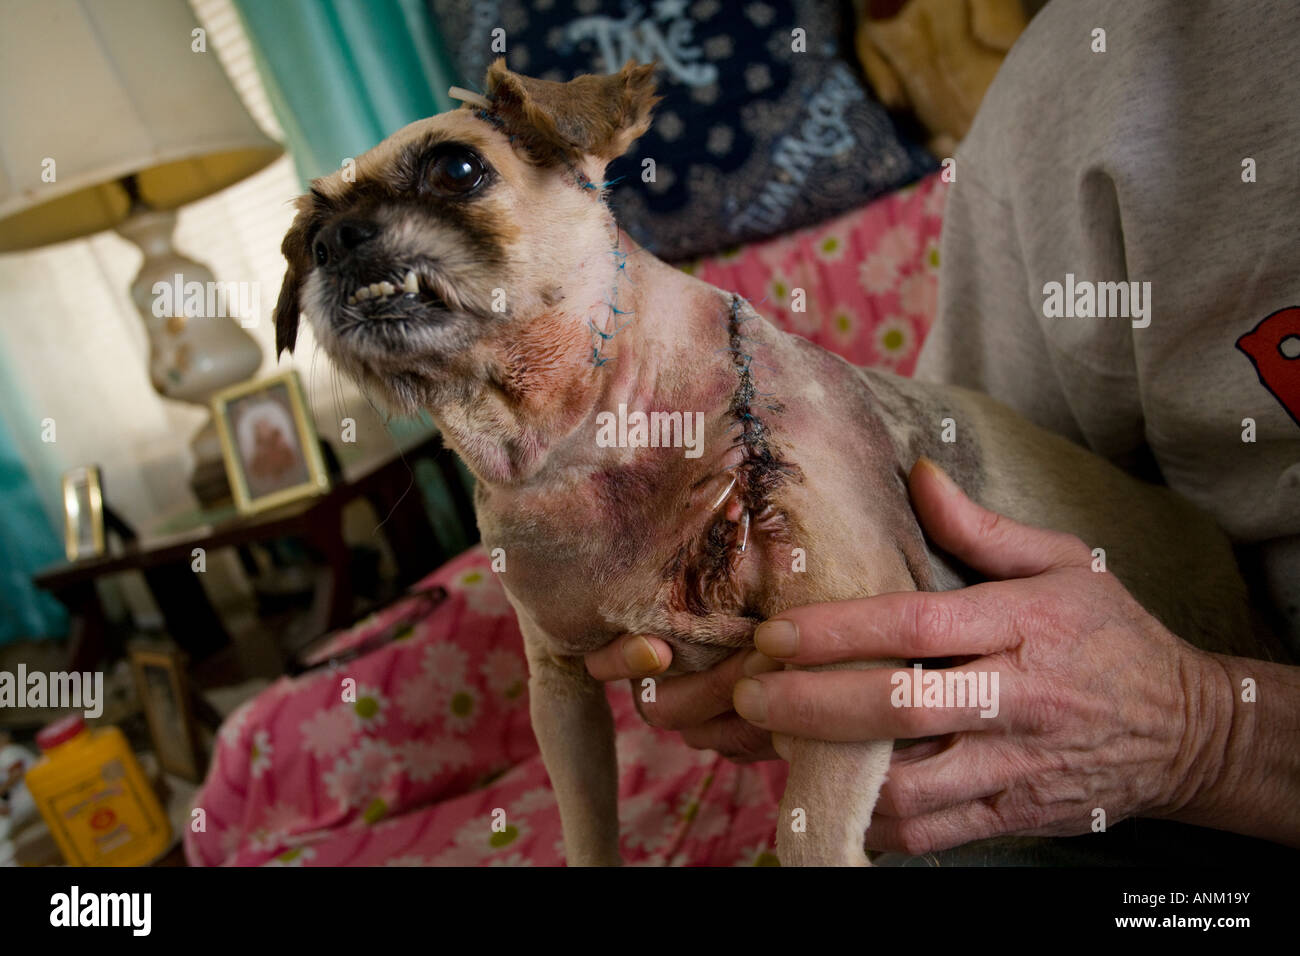 A man holds his small dog that was brutally slashed with a knife by kids and received hundreds of stitches - Stock Image